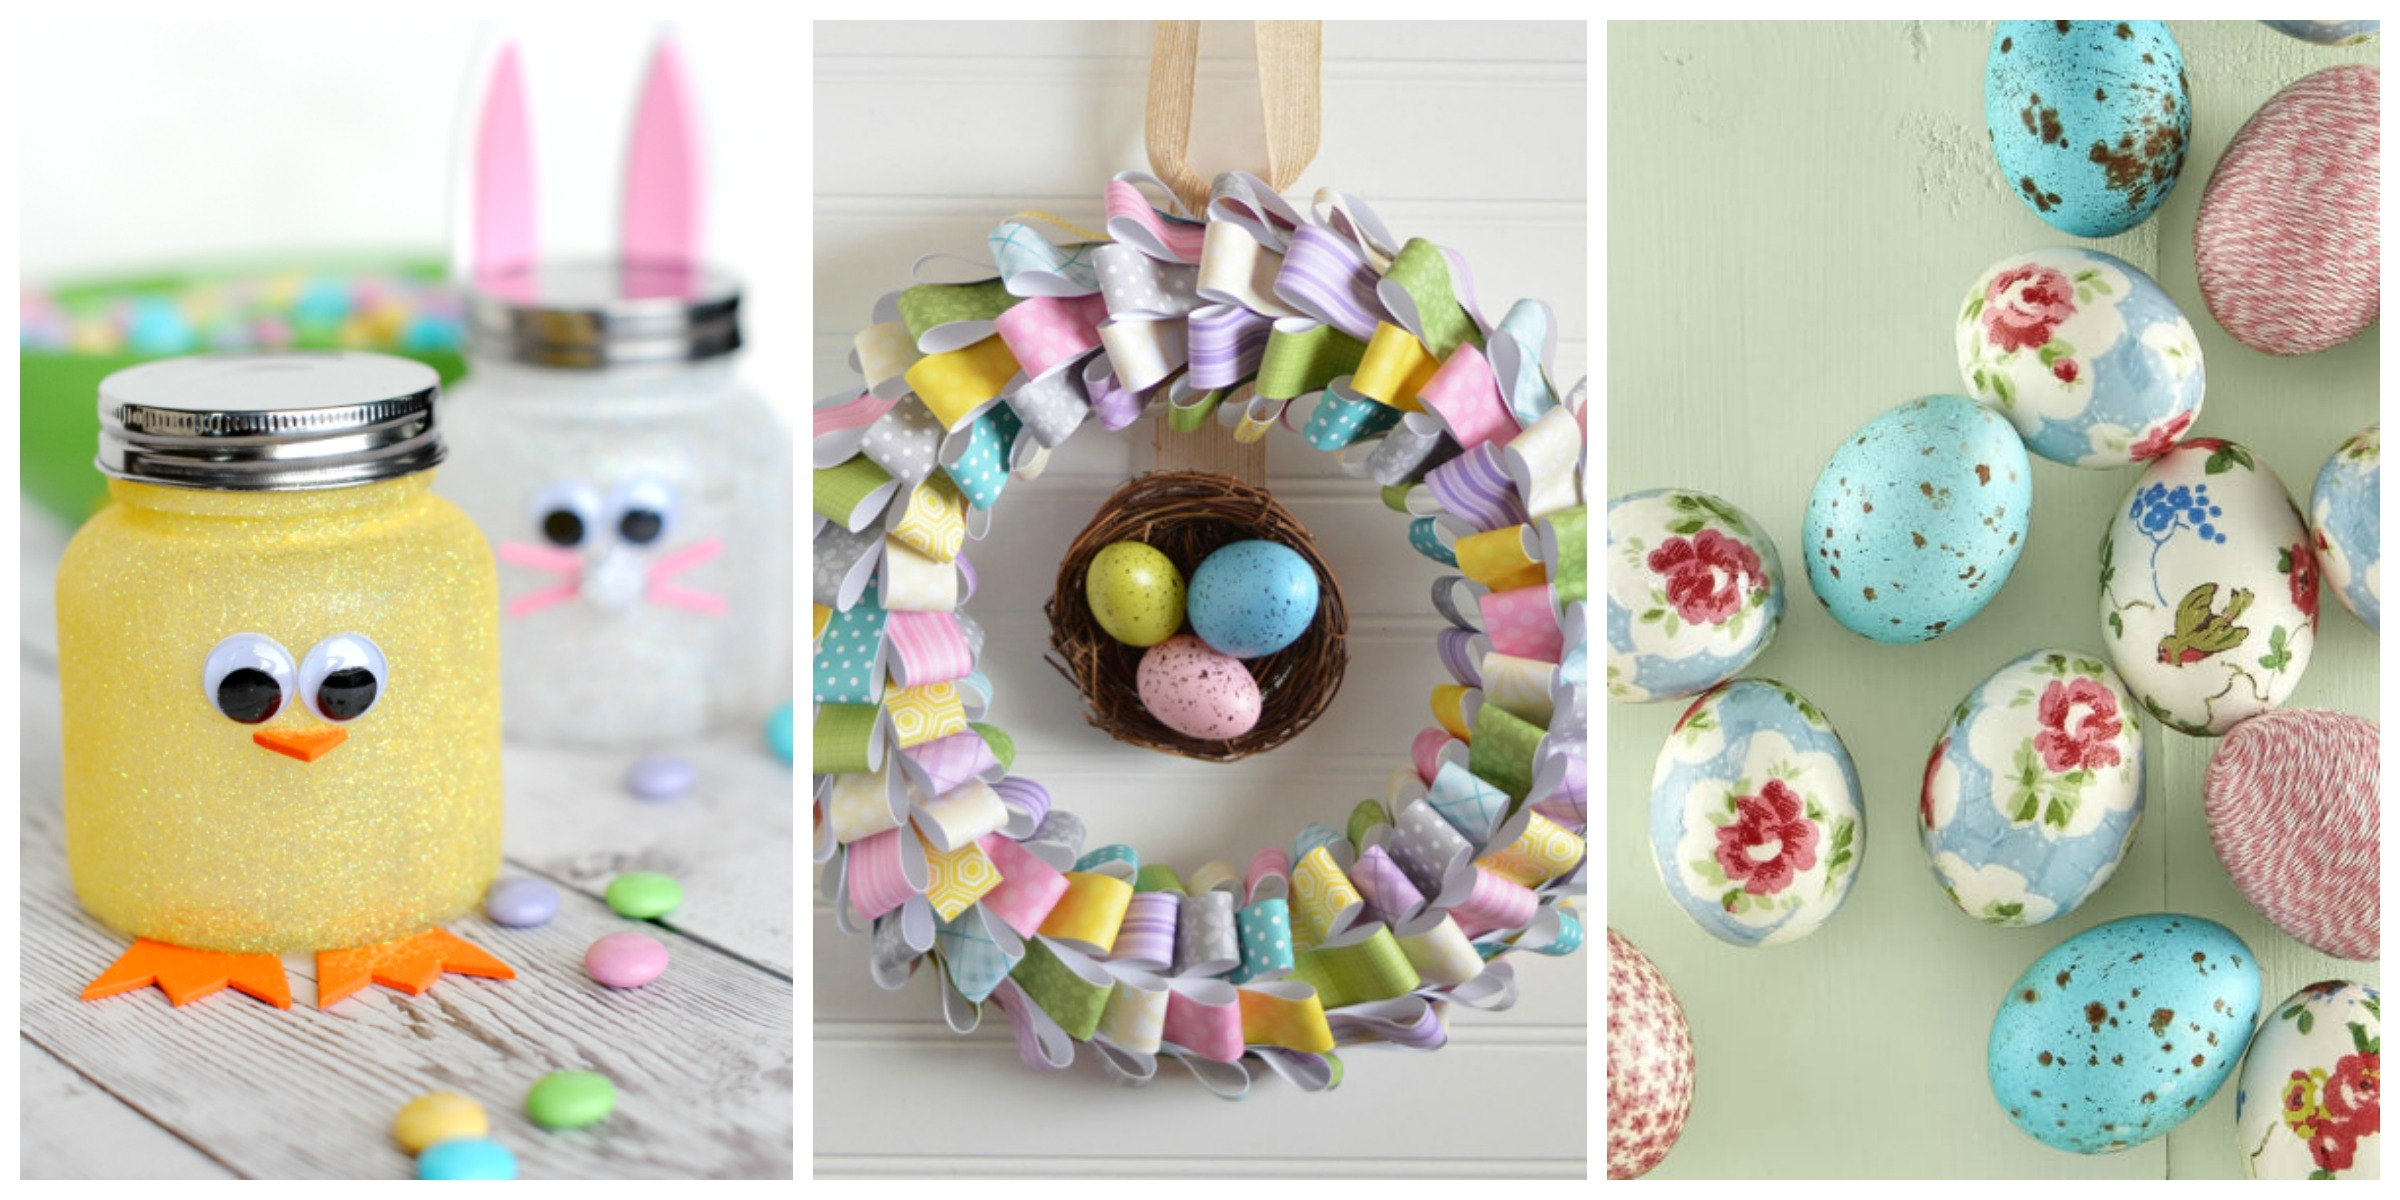 60 easy easter crafts ideas for easter diy decorations gifts country living Diy home decor crafts pinterest